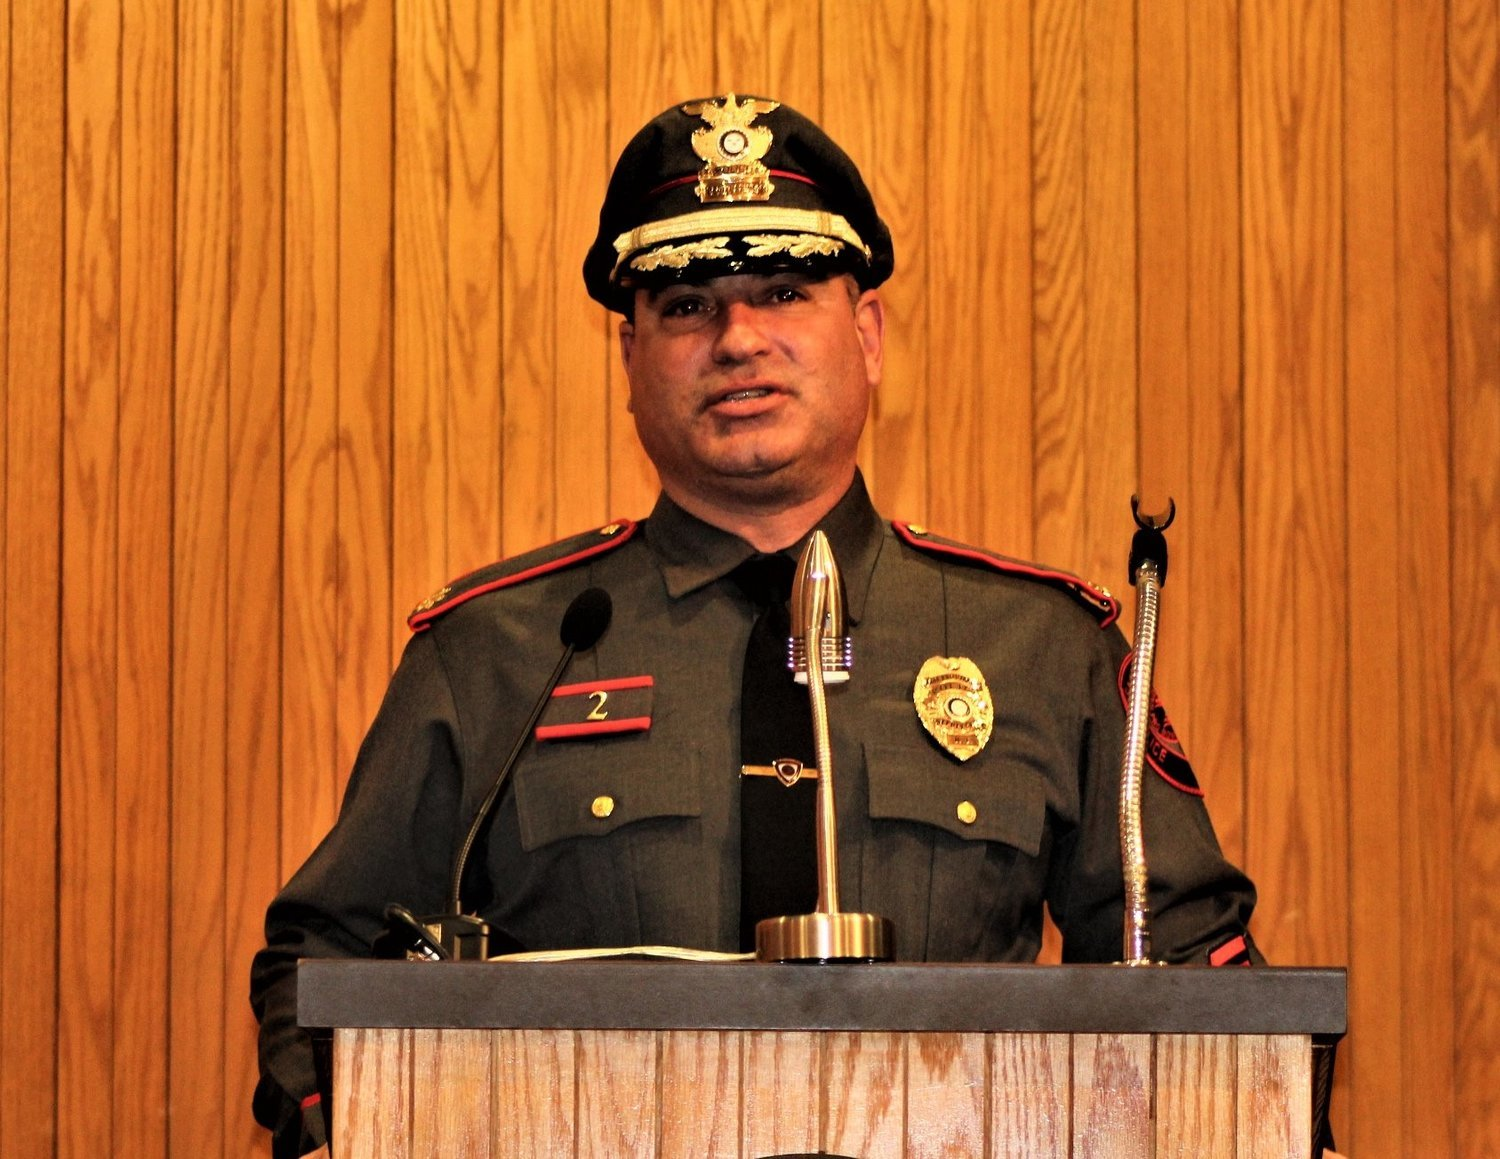 Police Chief Bill Nebus